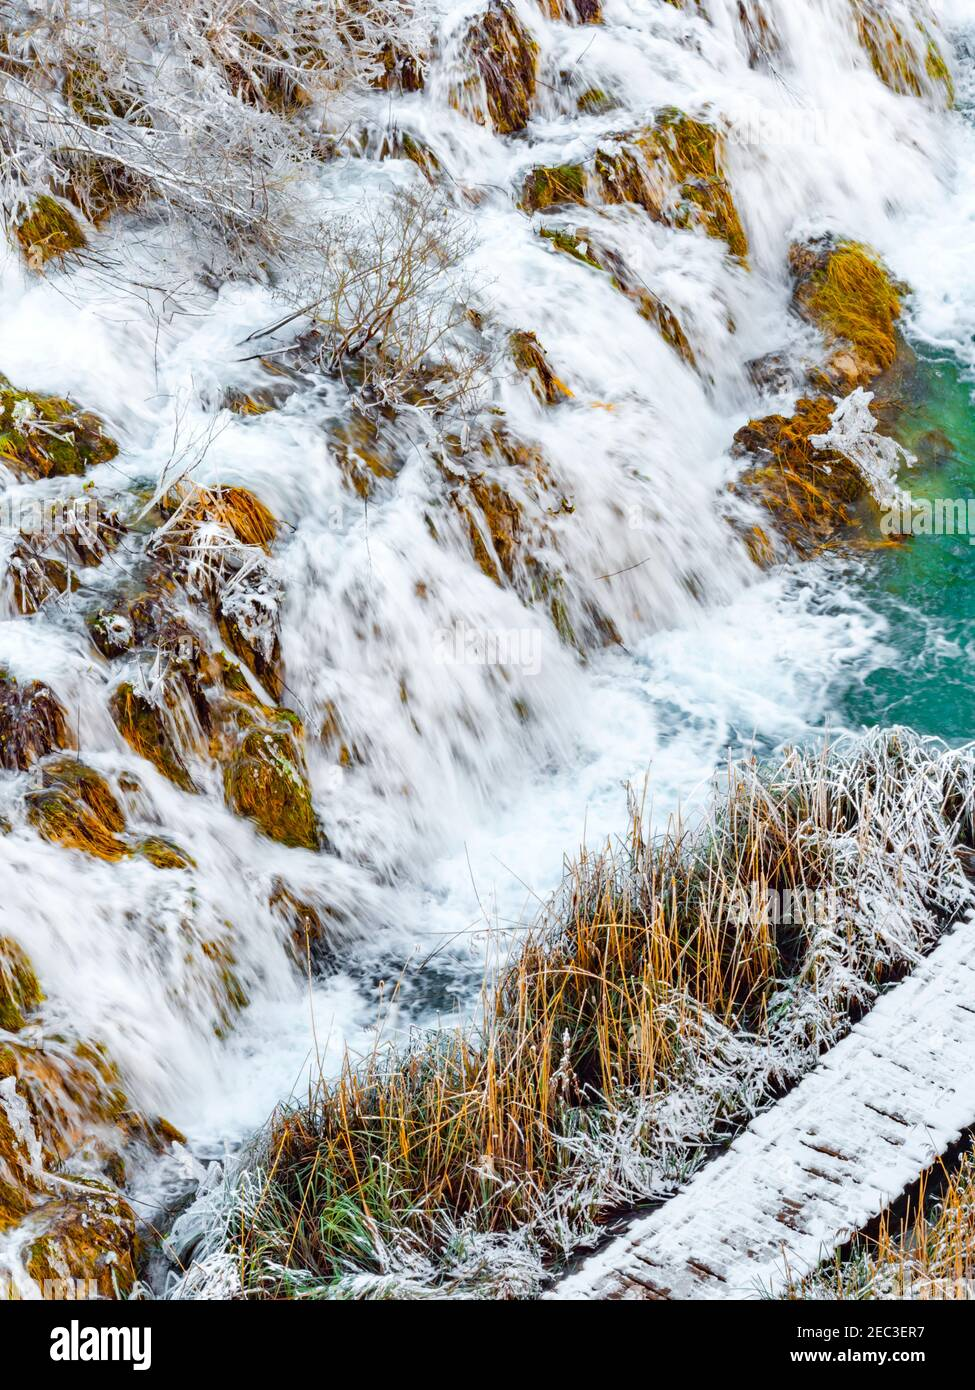 Cascading waterfalls in national park Plitvice lakes Croatia Europe Winter under covered cover snow ice waterflow water flowing flow Stock Photo